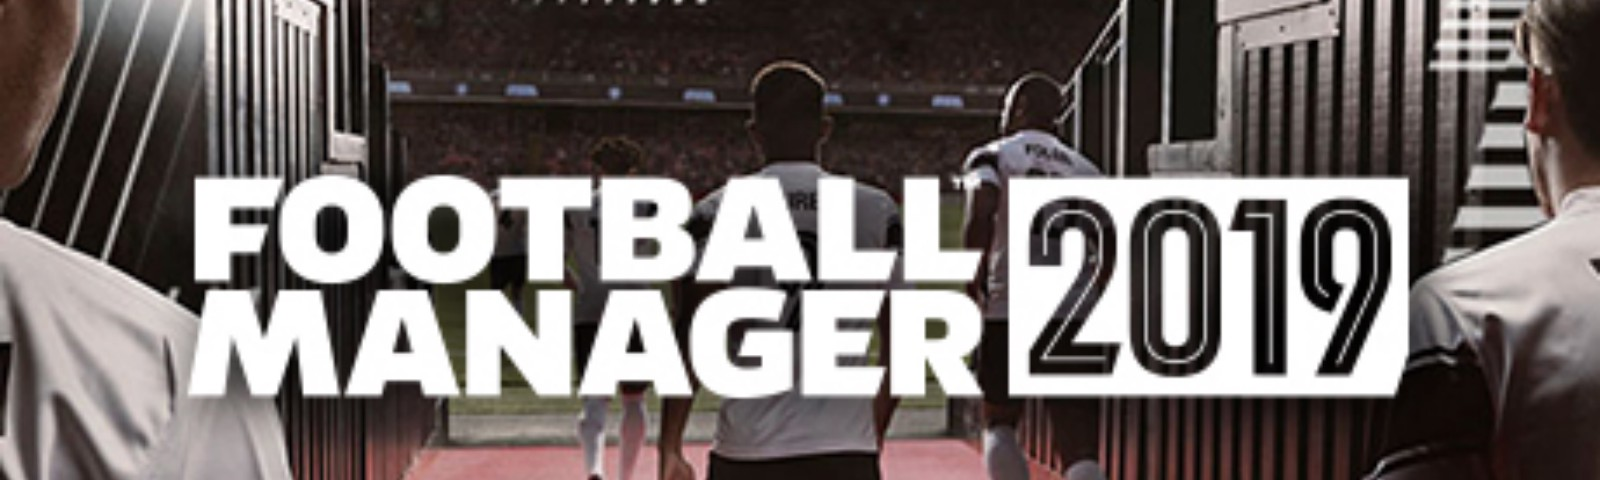 football manager 2017 free download mac